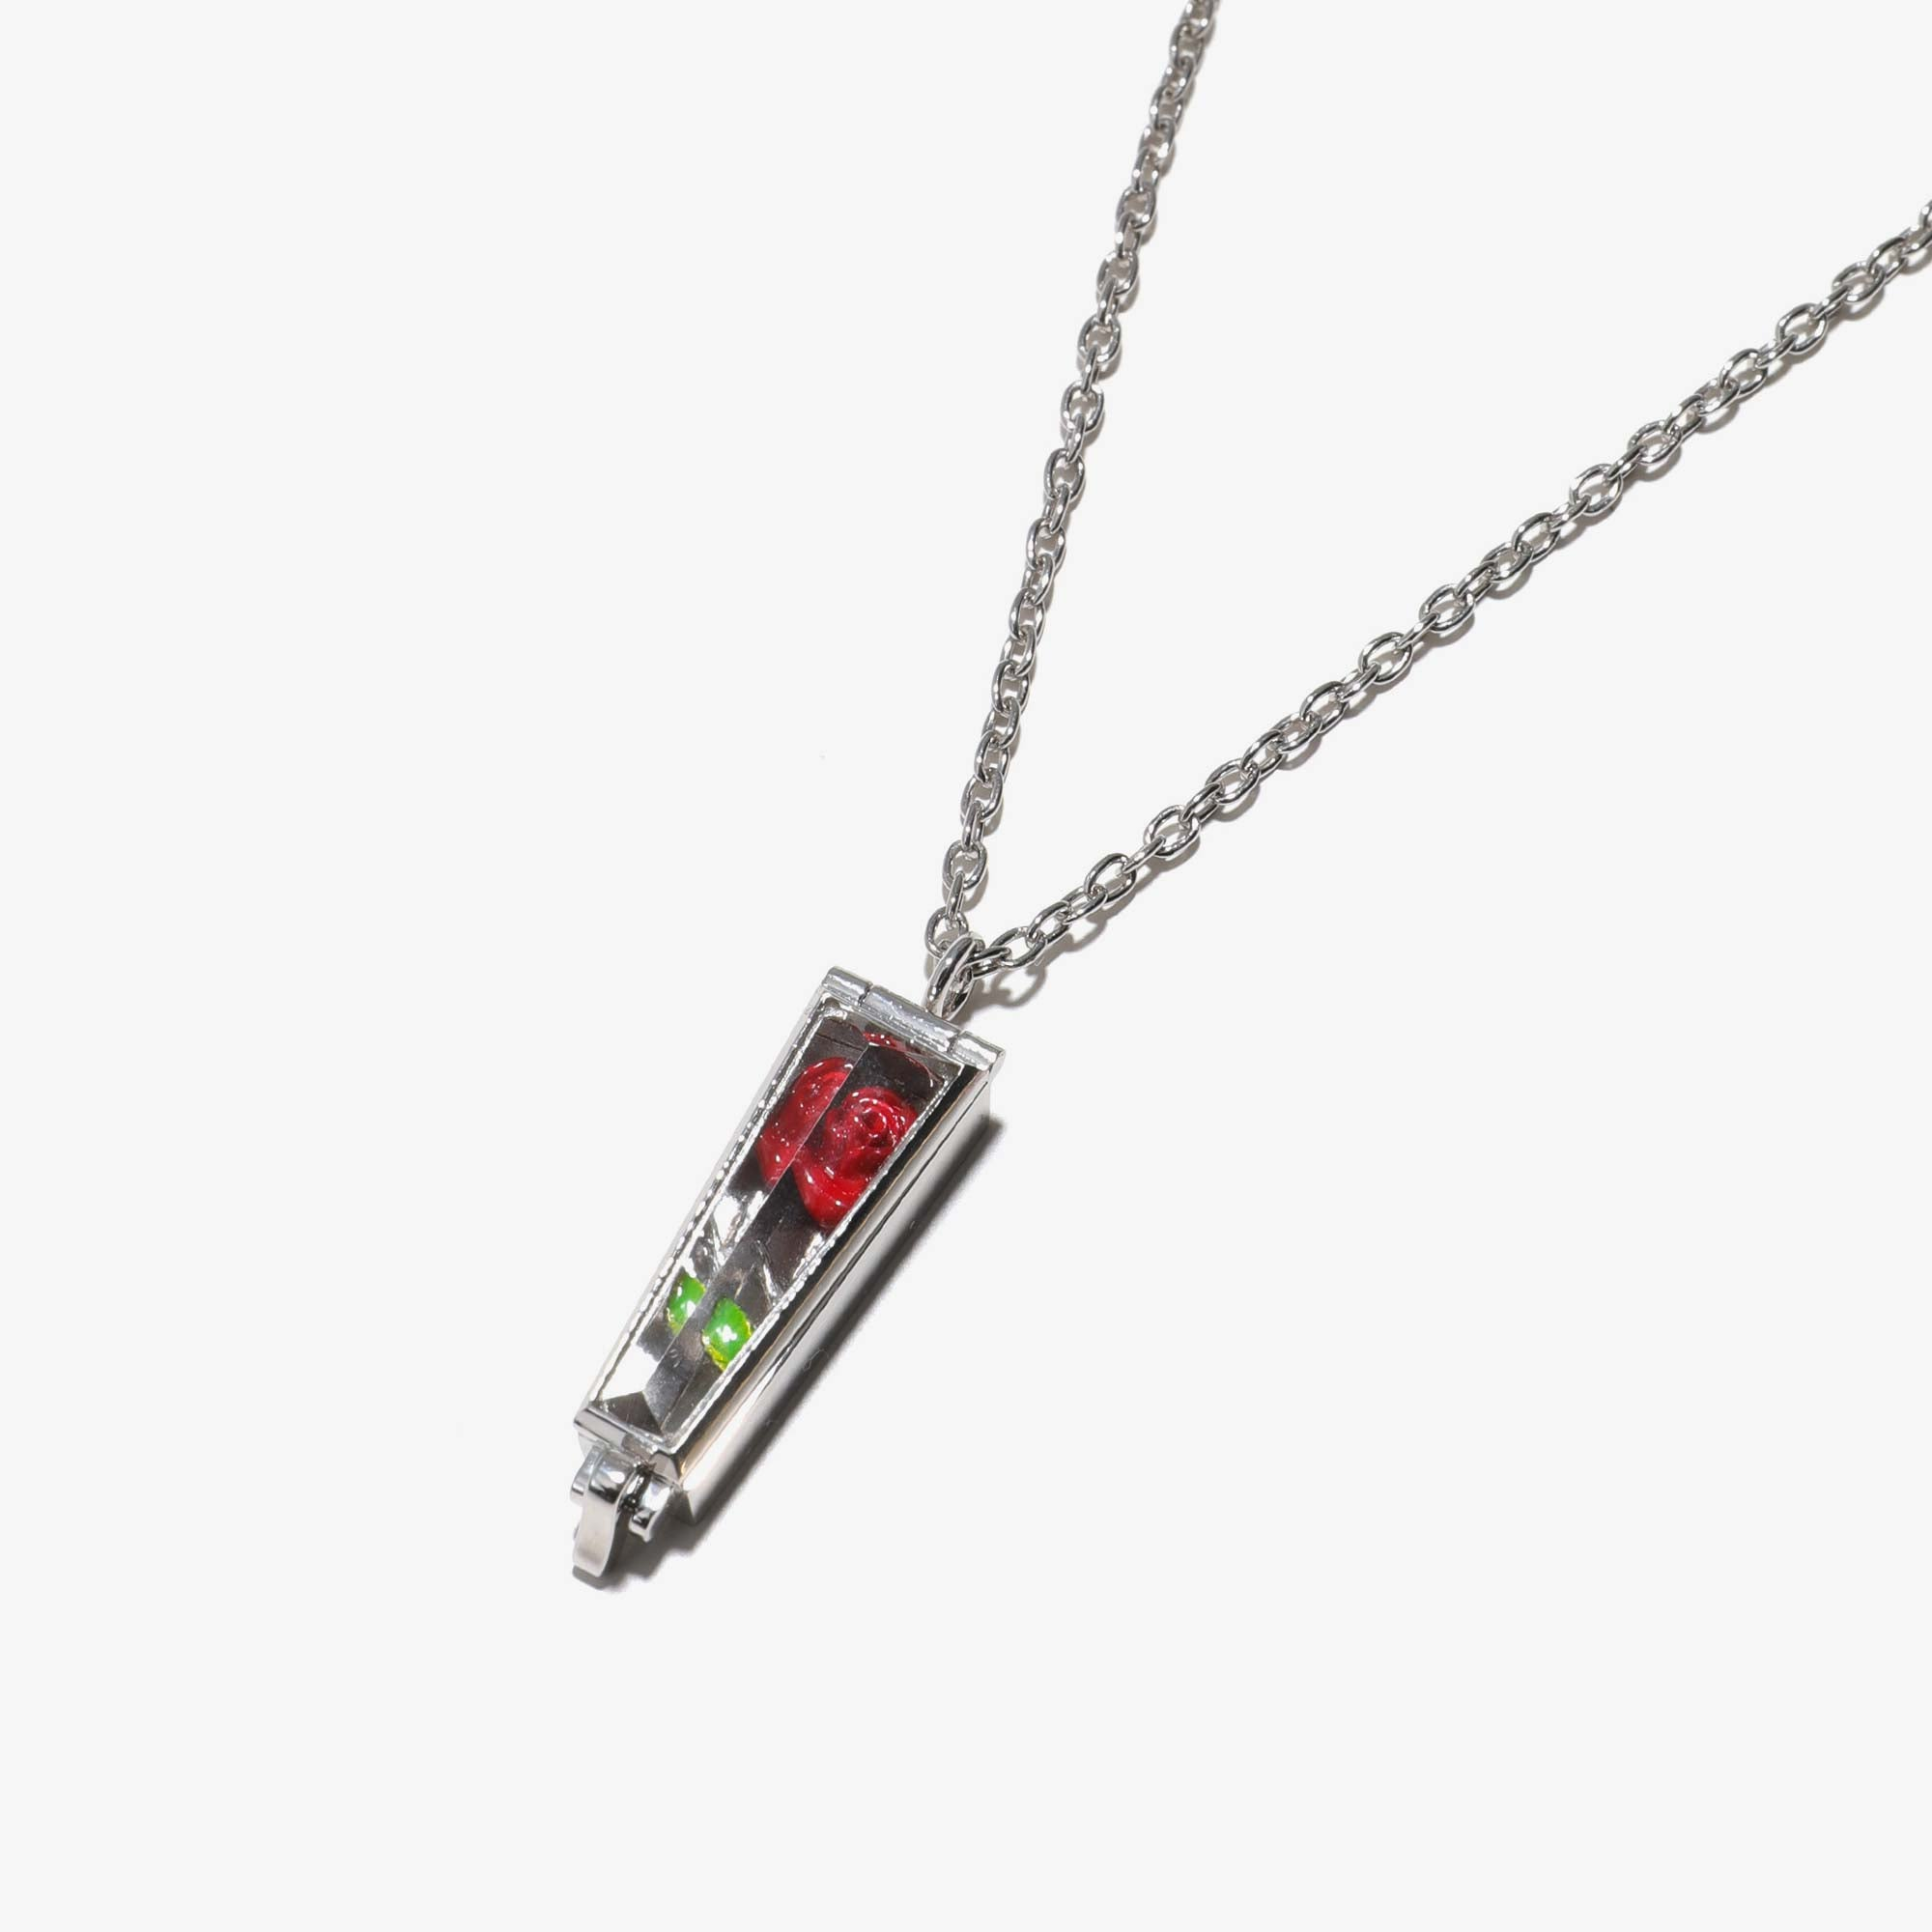 Undercover Rose Case Necklace UC1A4N02 - Silver 925 2